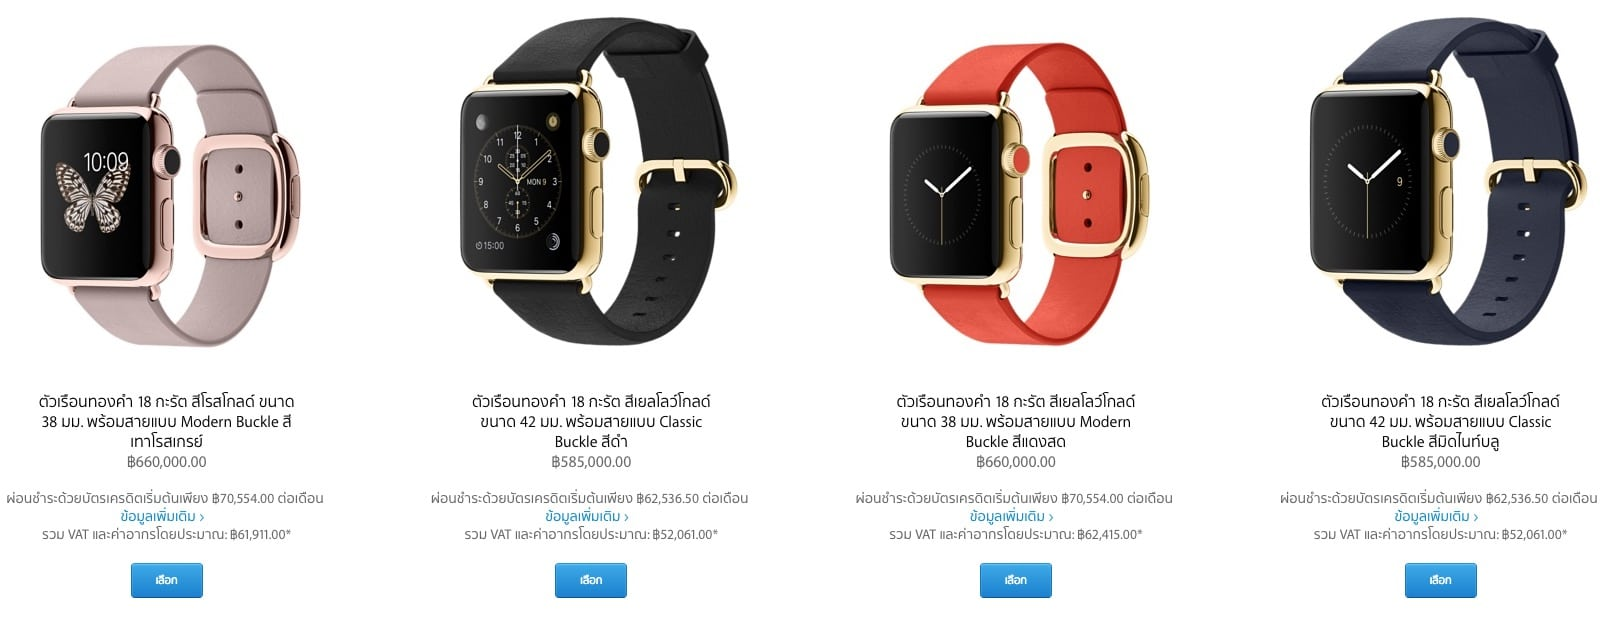 apple-watch-price-in-thailand-sport-collection-stainless-steel-edition.22 PM